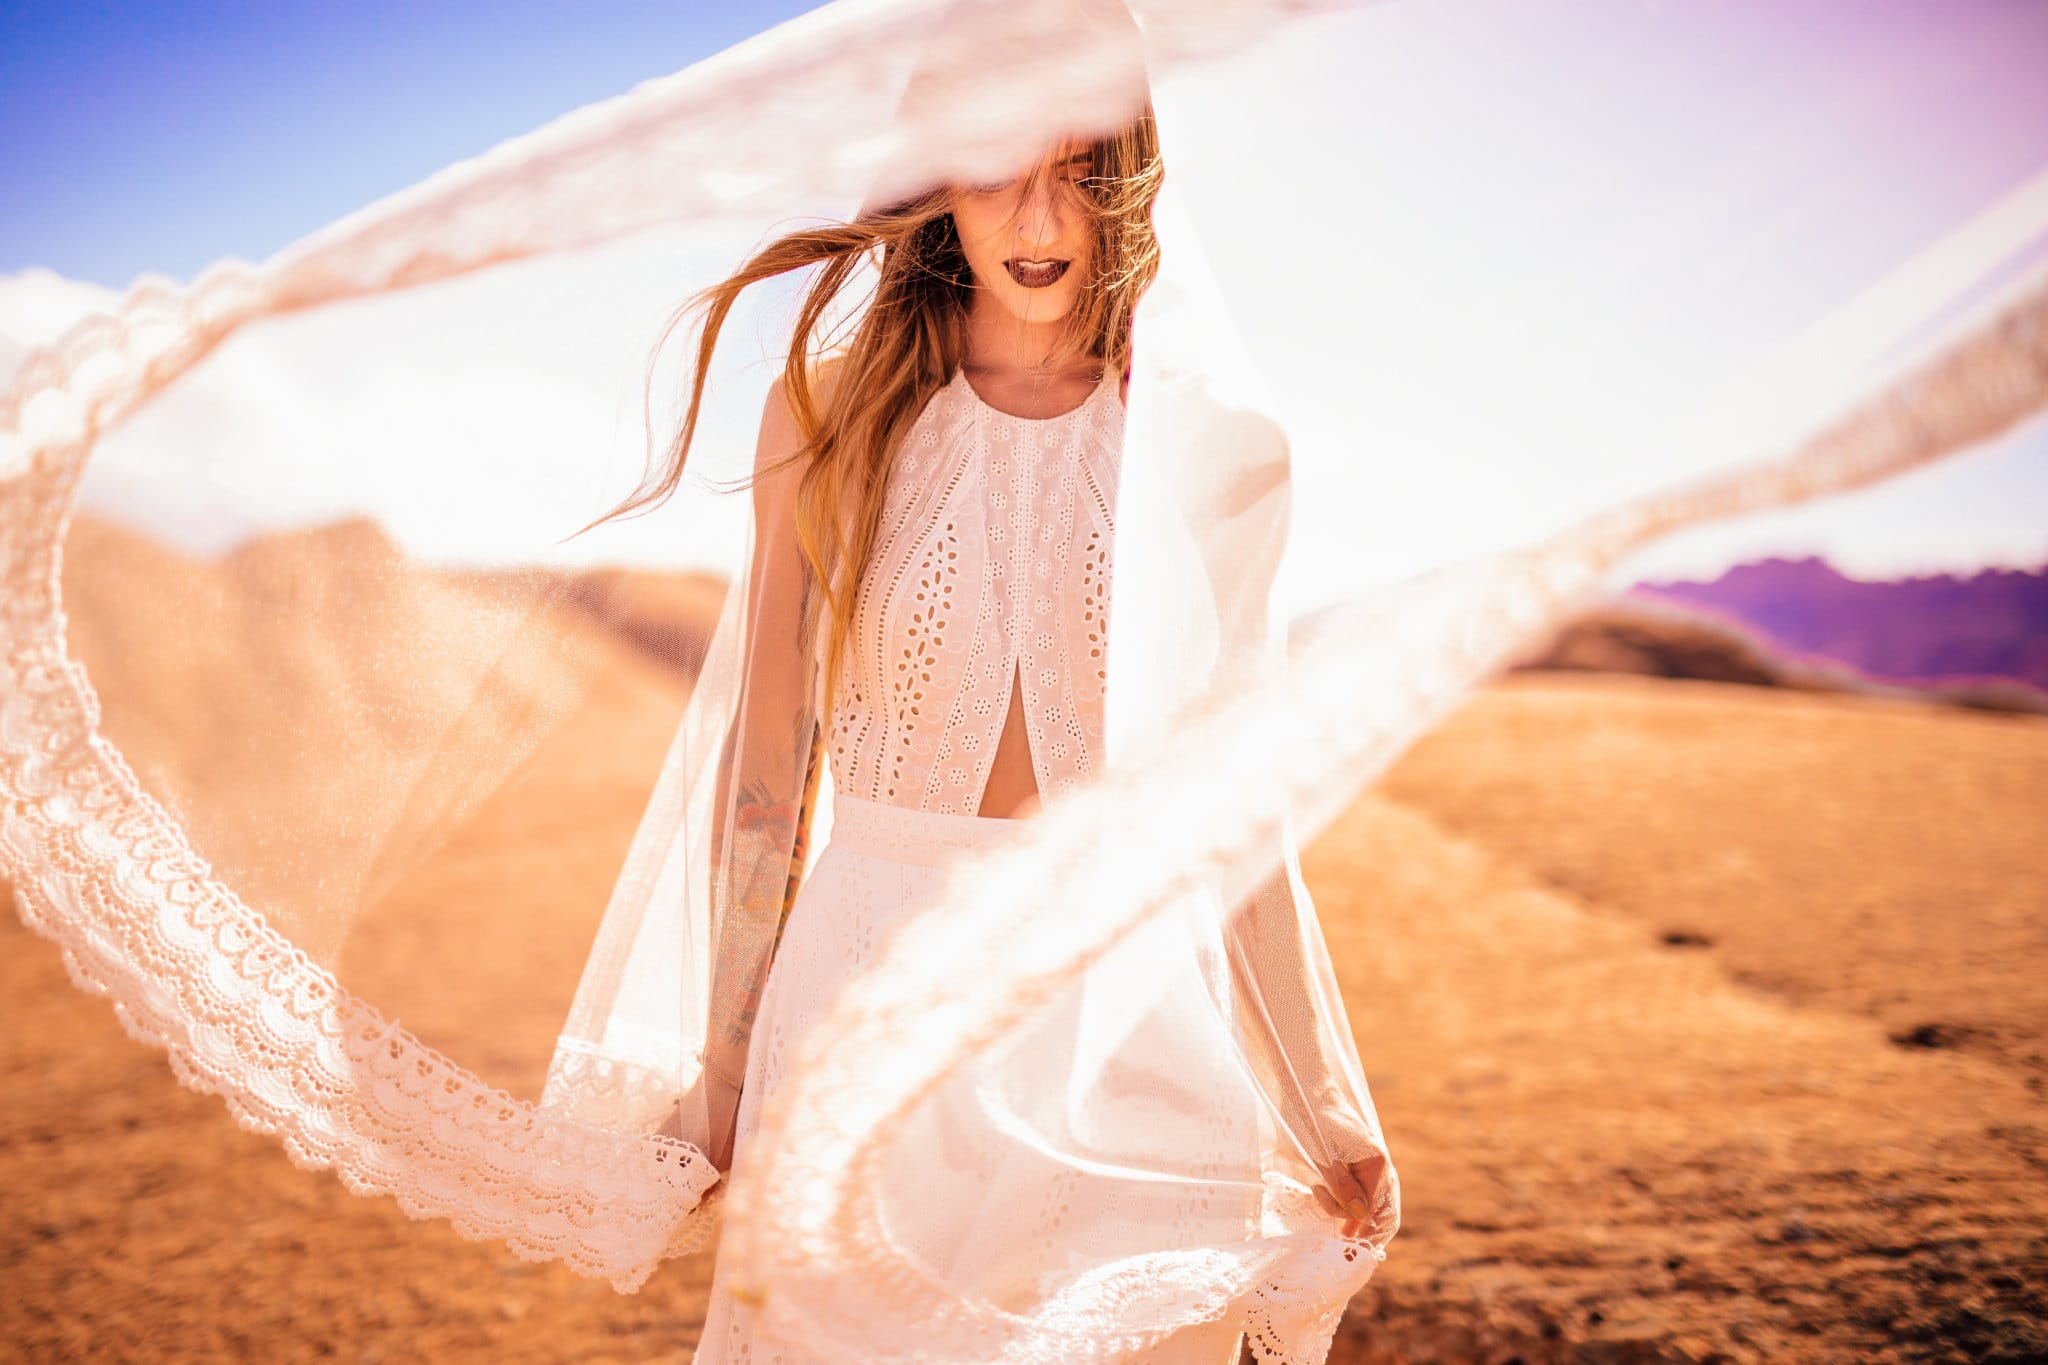 Magical Styled Shoot in the Desert featuring Nicole by Sottero and Midgley